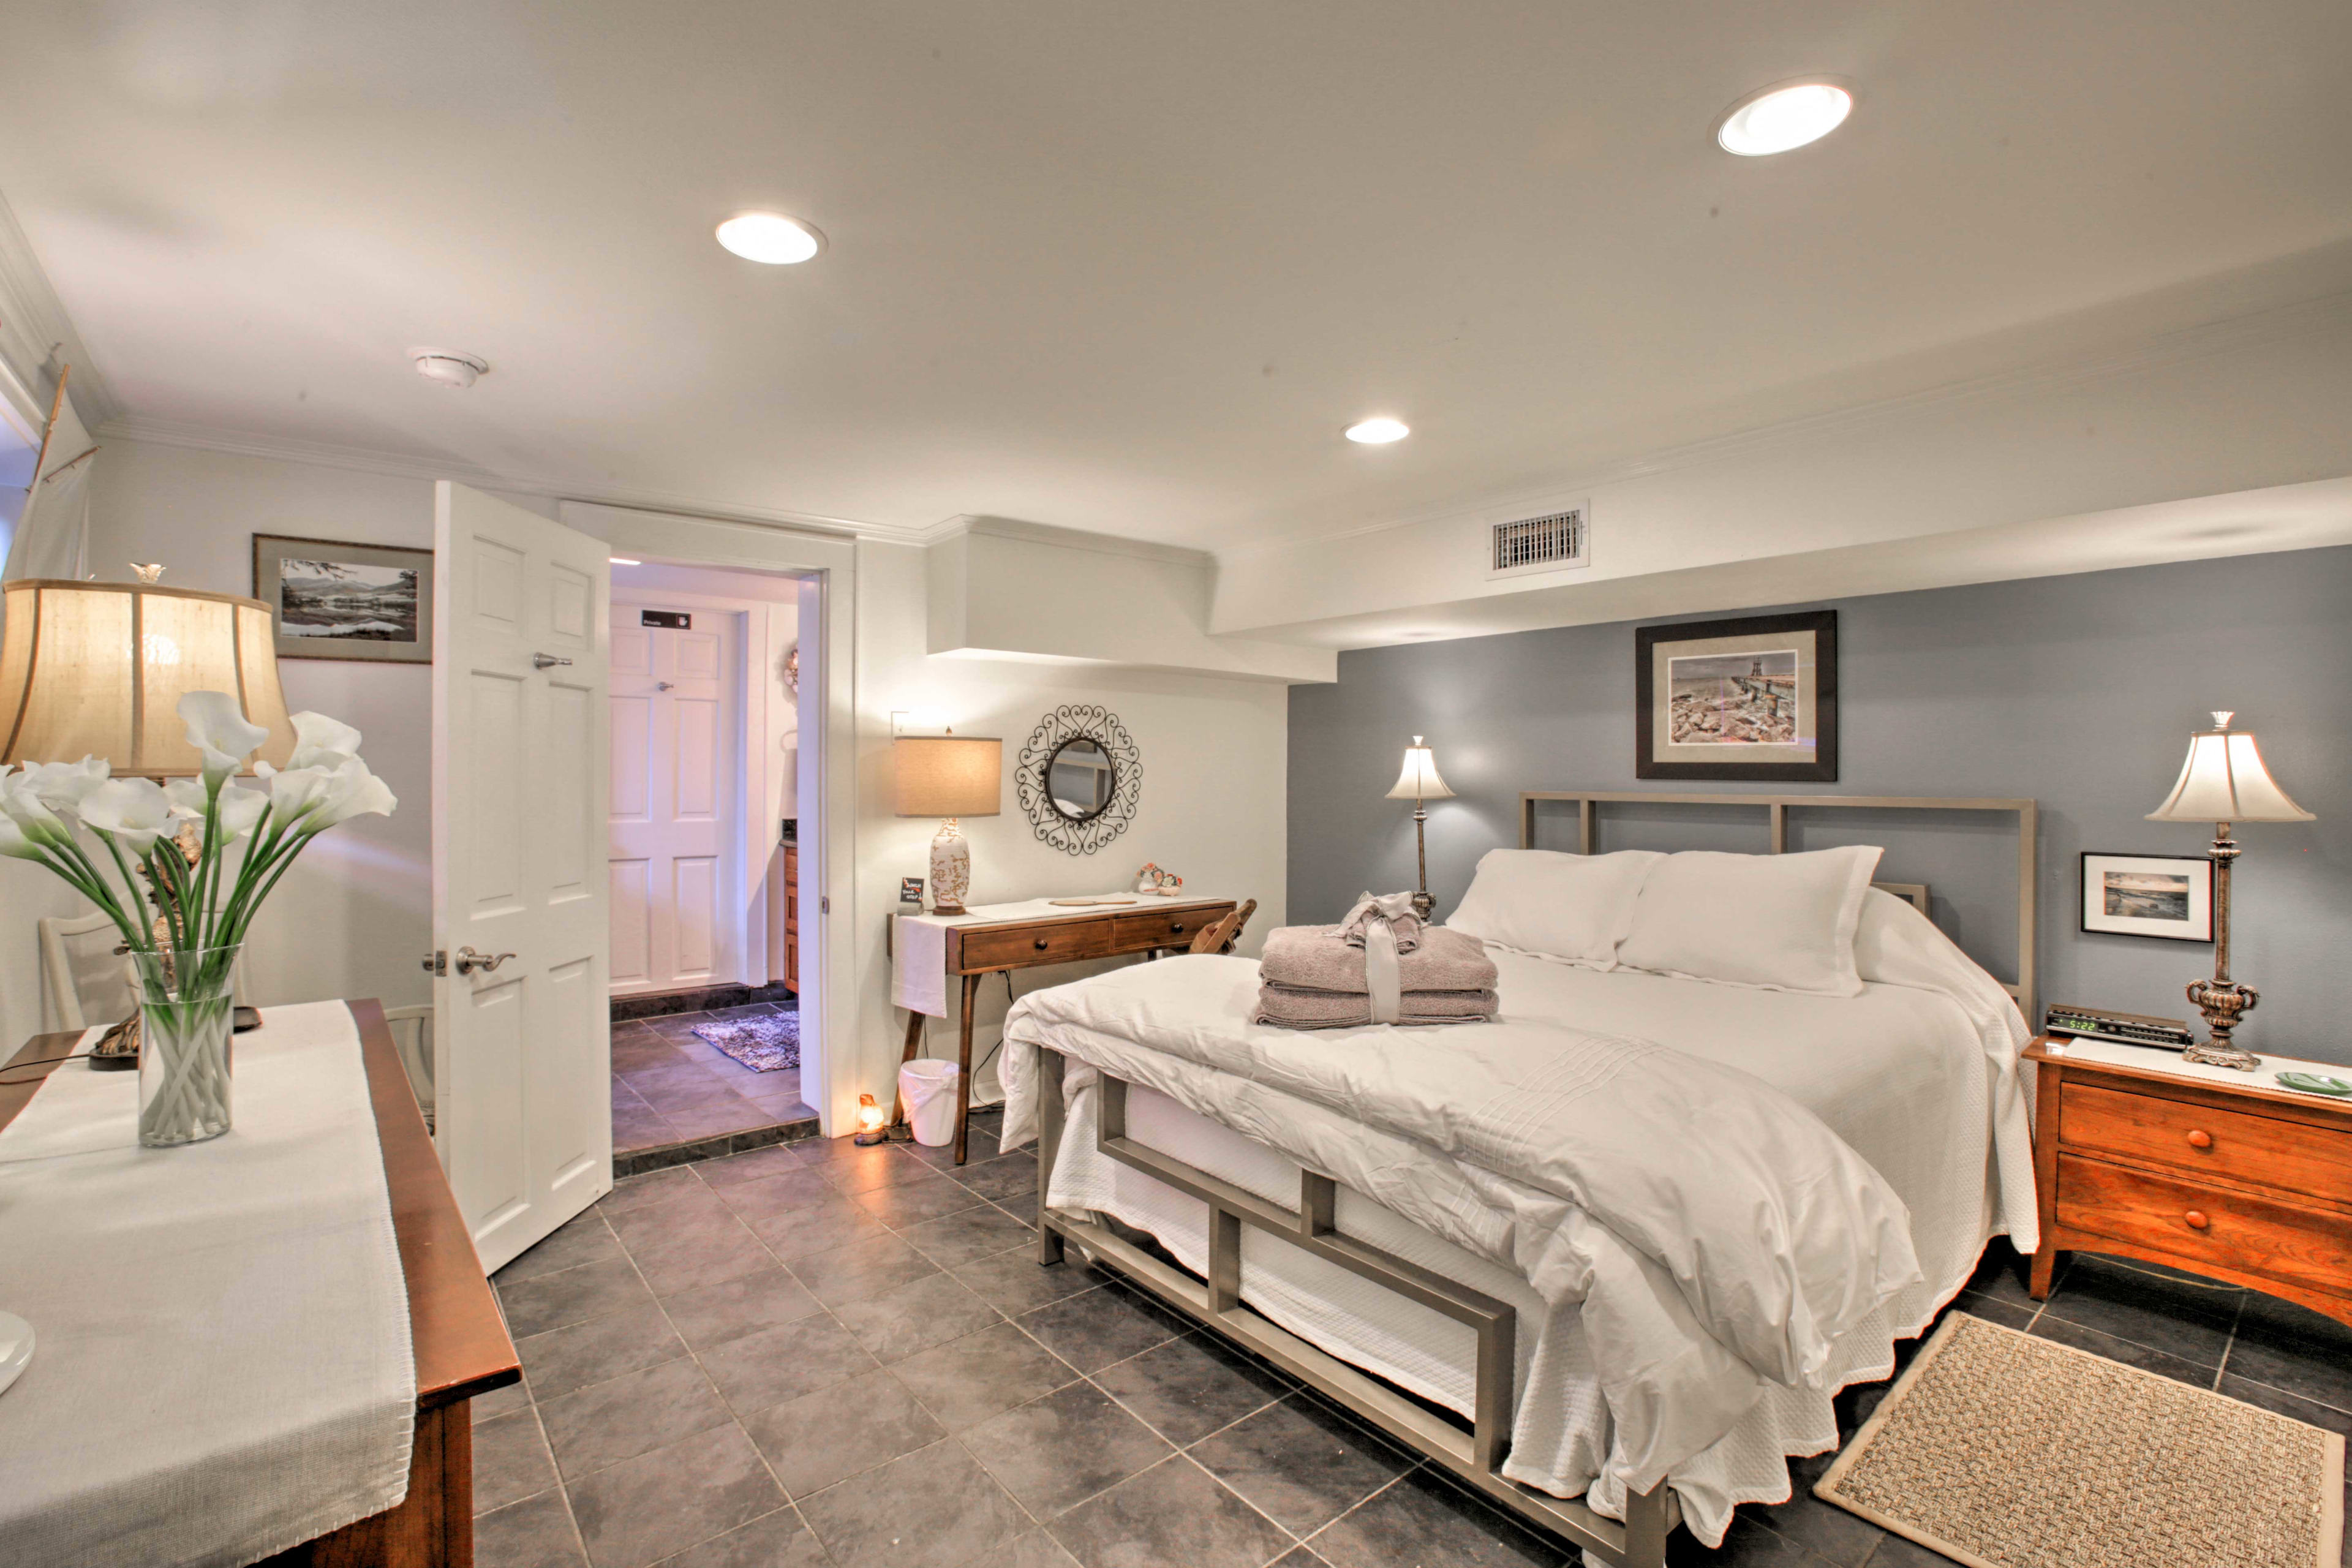 The second bedroom offers a queen-sized bed.